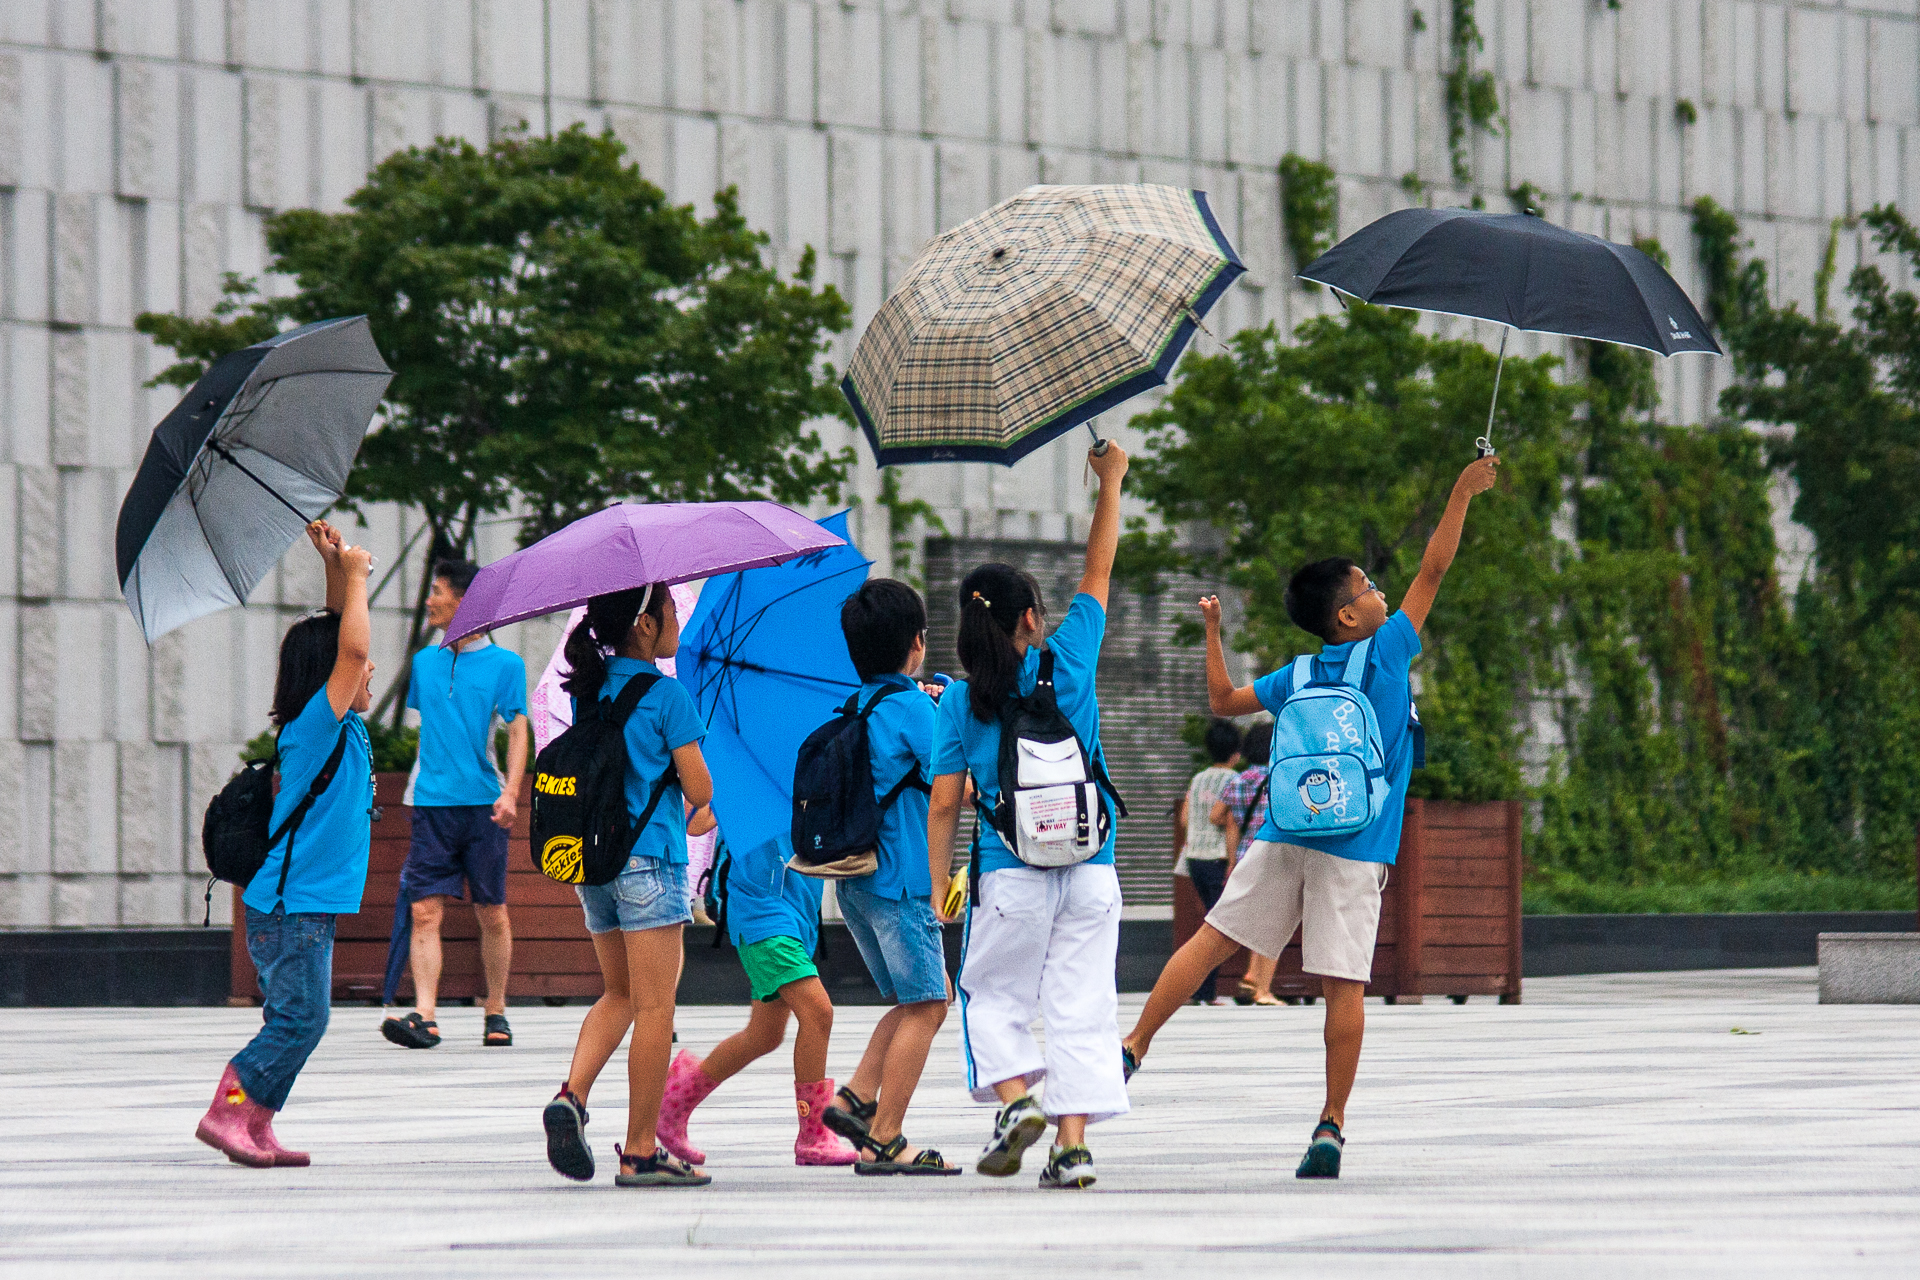 Korean Children with Umbrellas